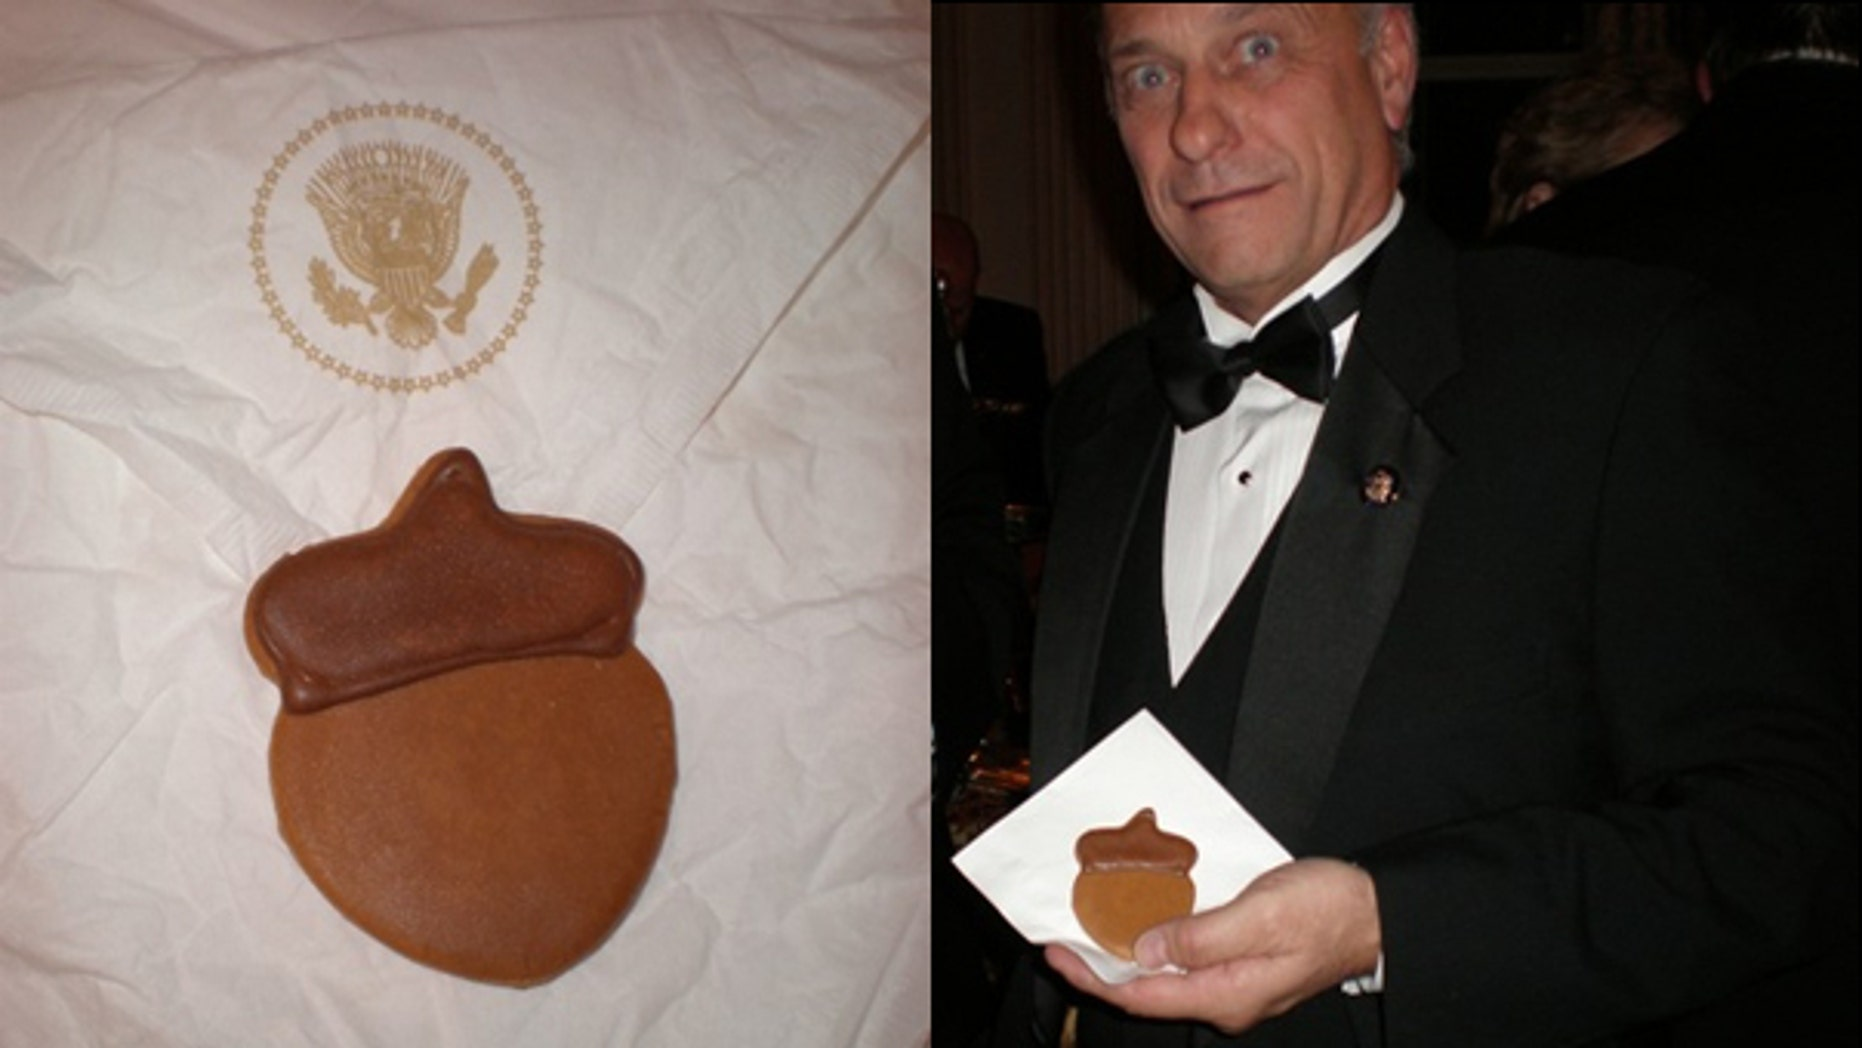 Rep. Steve King brandishes an acorn cookie served at the White House annual Christmas party, Monday, Dec. 7, 2009, (Rep. Steve King)